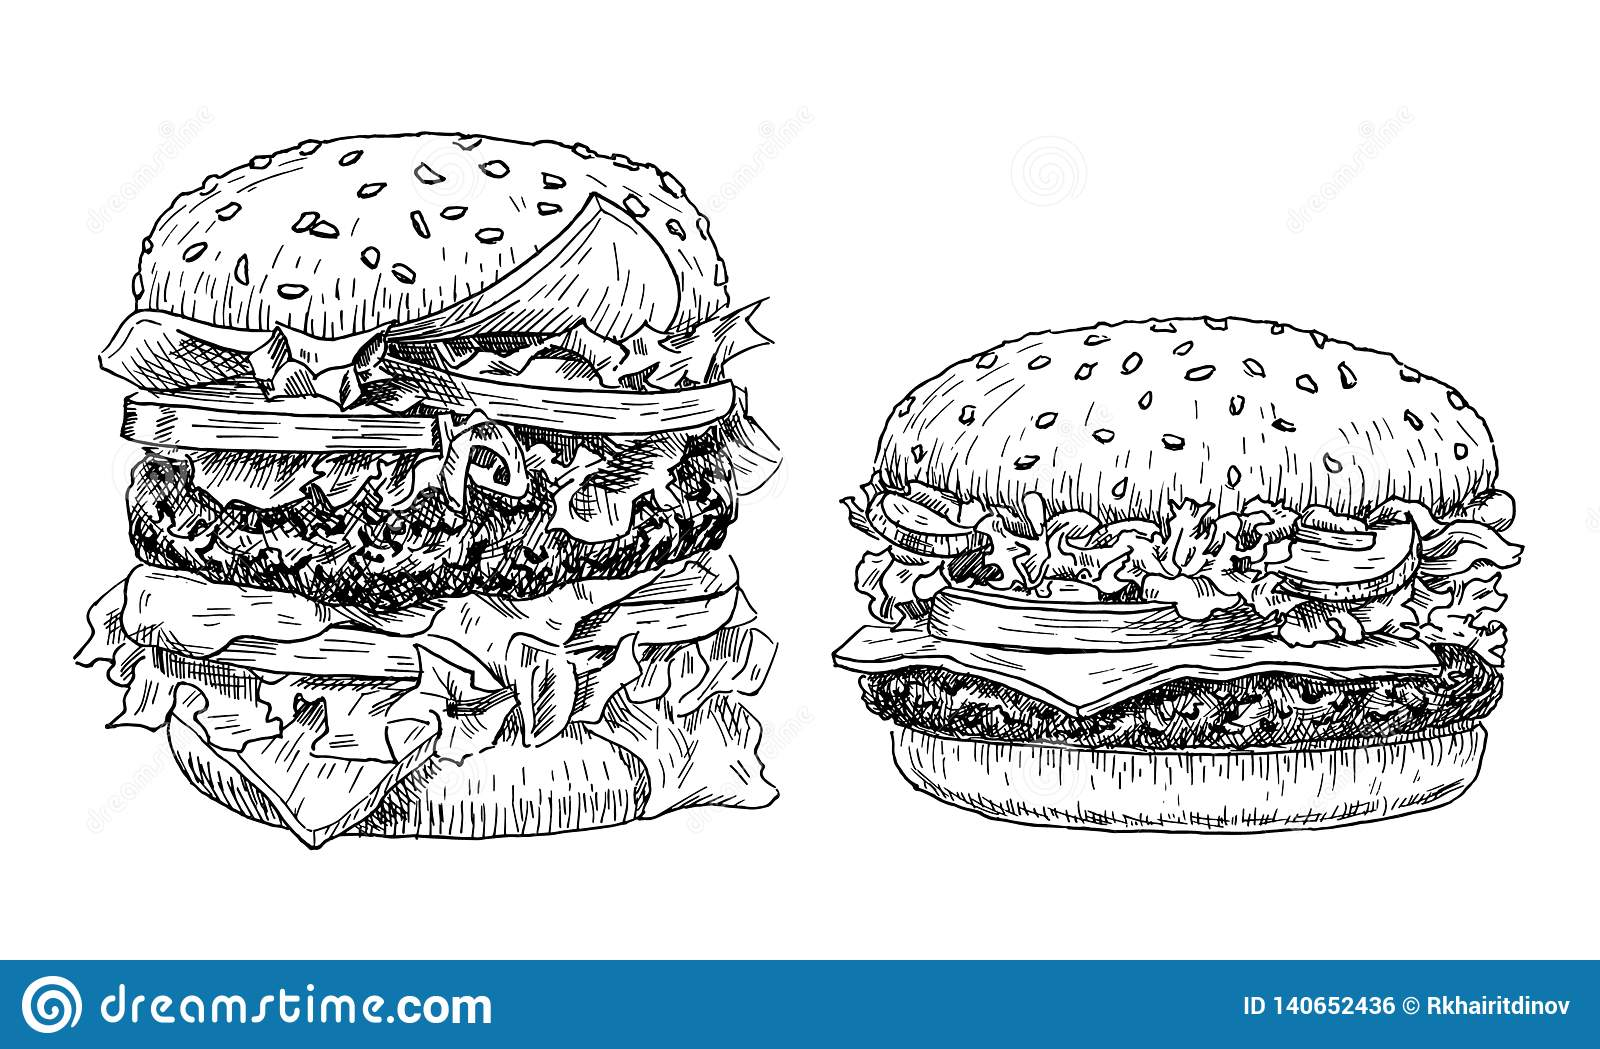 Hamburger and cheeseburger hand drawn vector illustration. Fast food engraved style. Burgers sketch isolated on white.